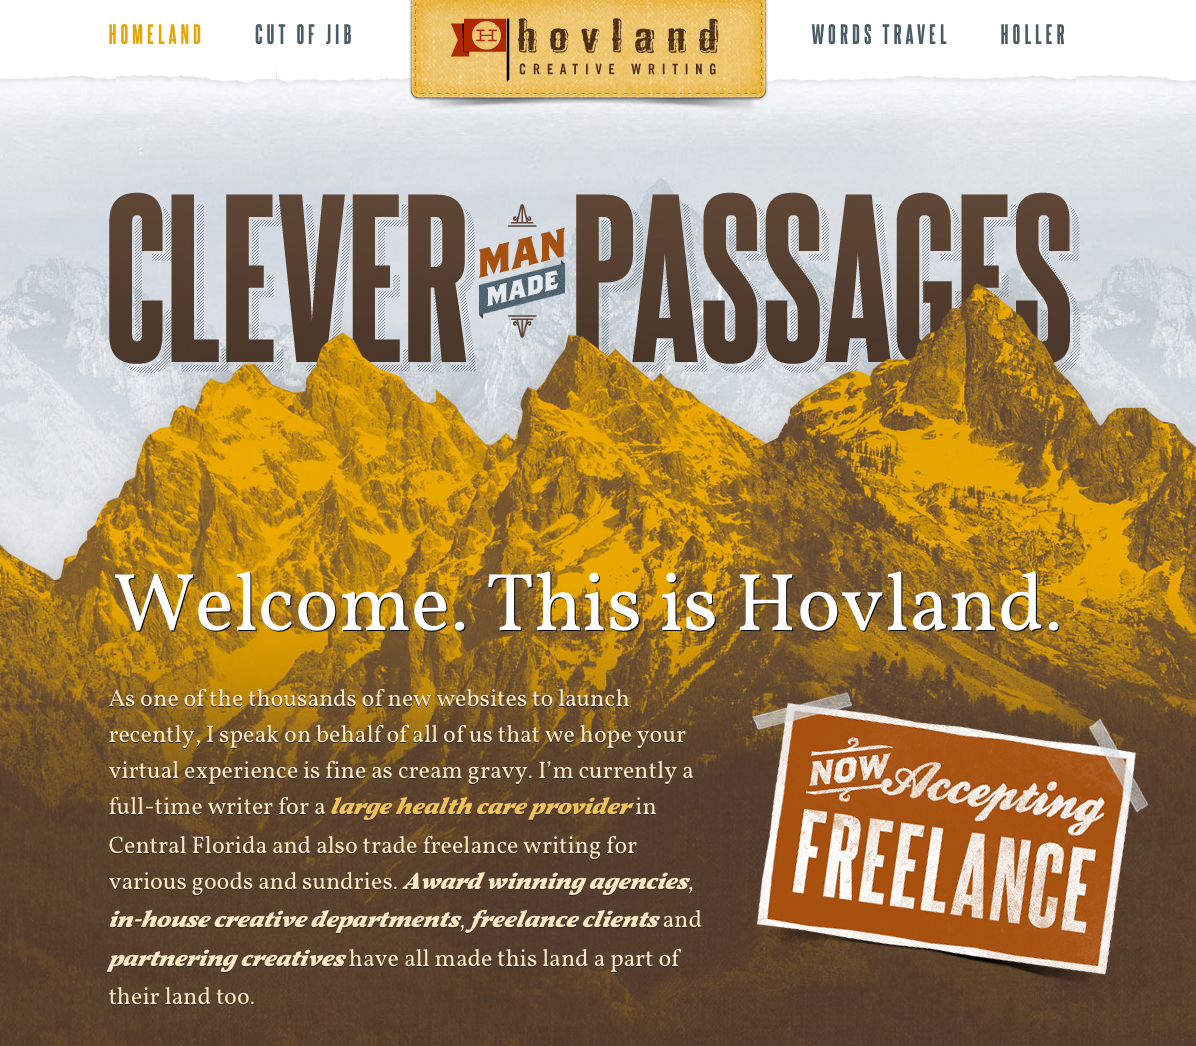 This Land Is Hovland Website Screenshot